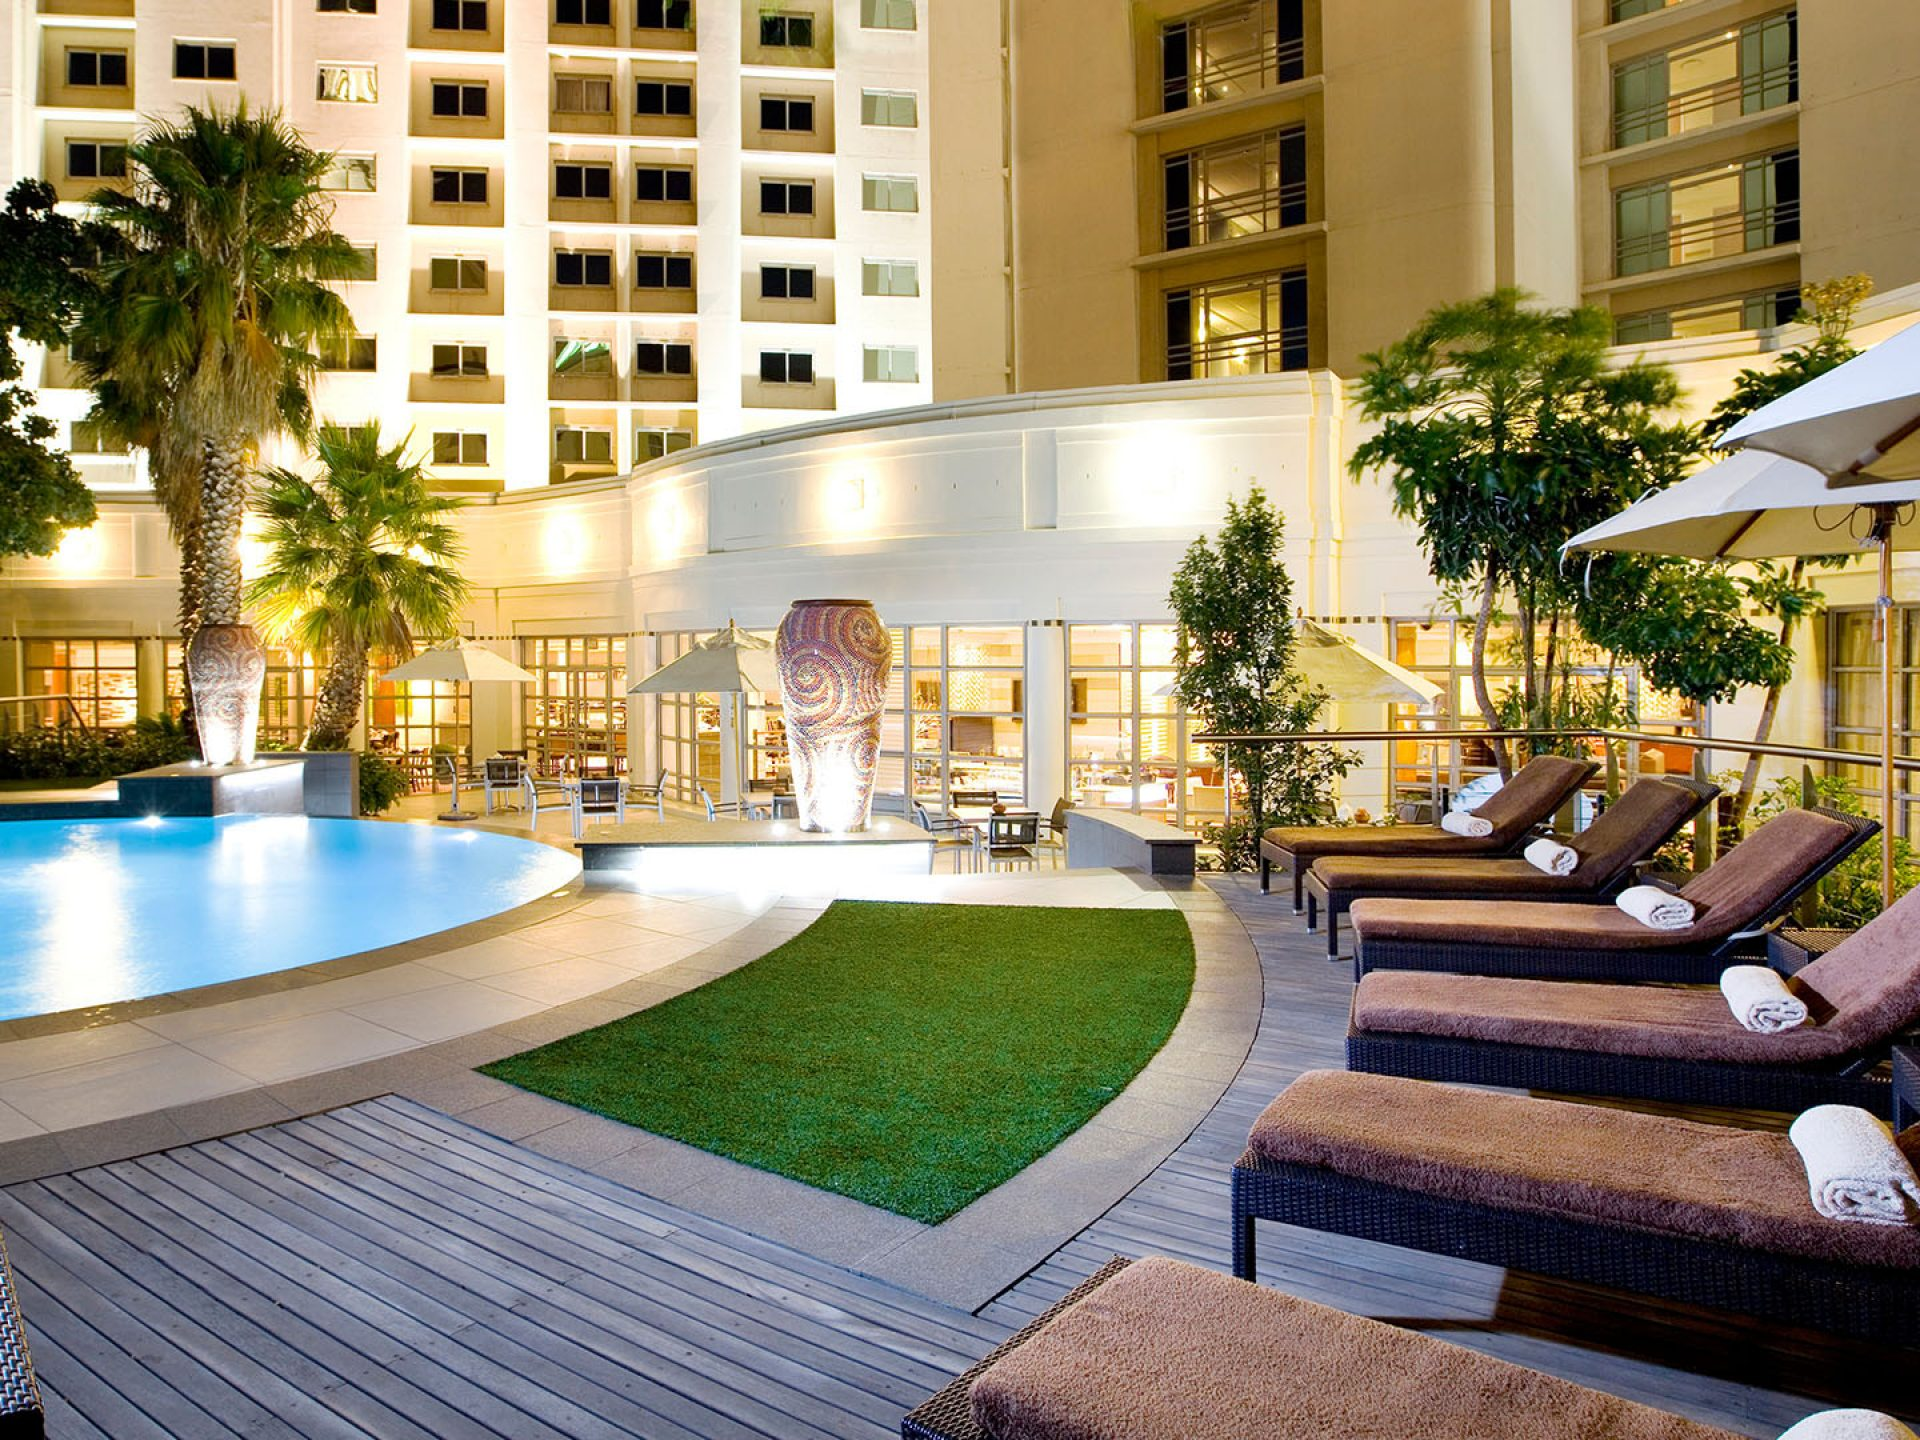 Pool area at the Hotel Southern Sun Waterfront